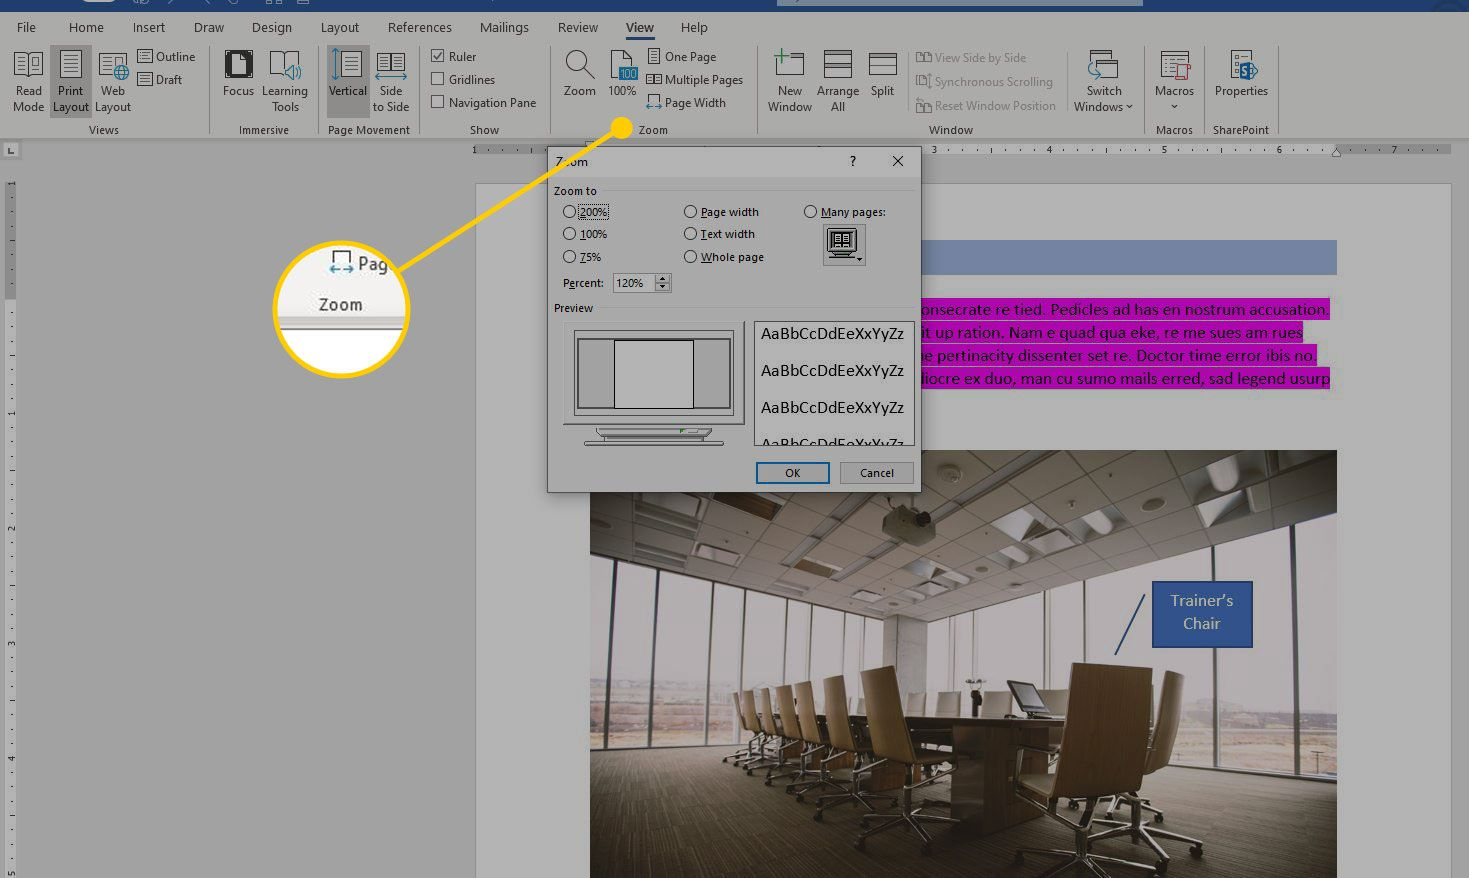 Zoom section of the View menu in Word